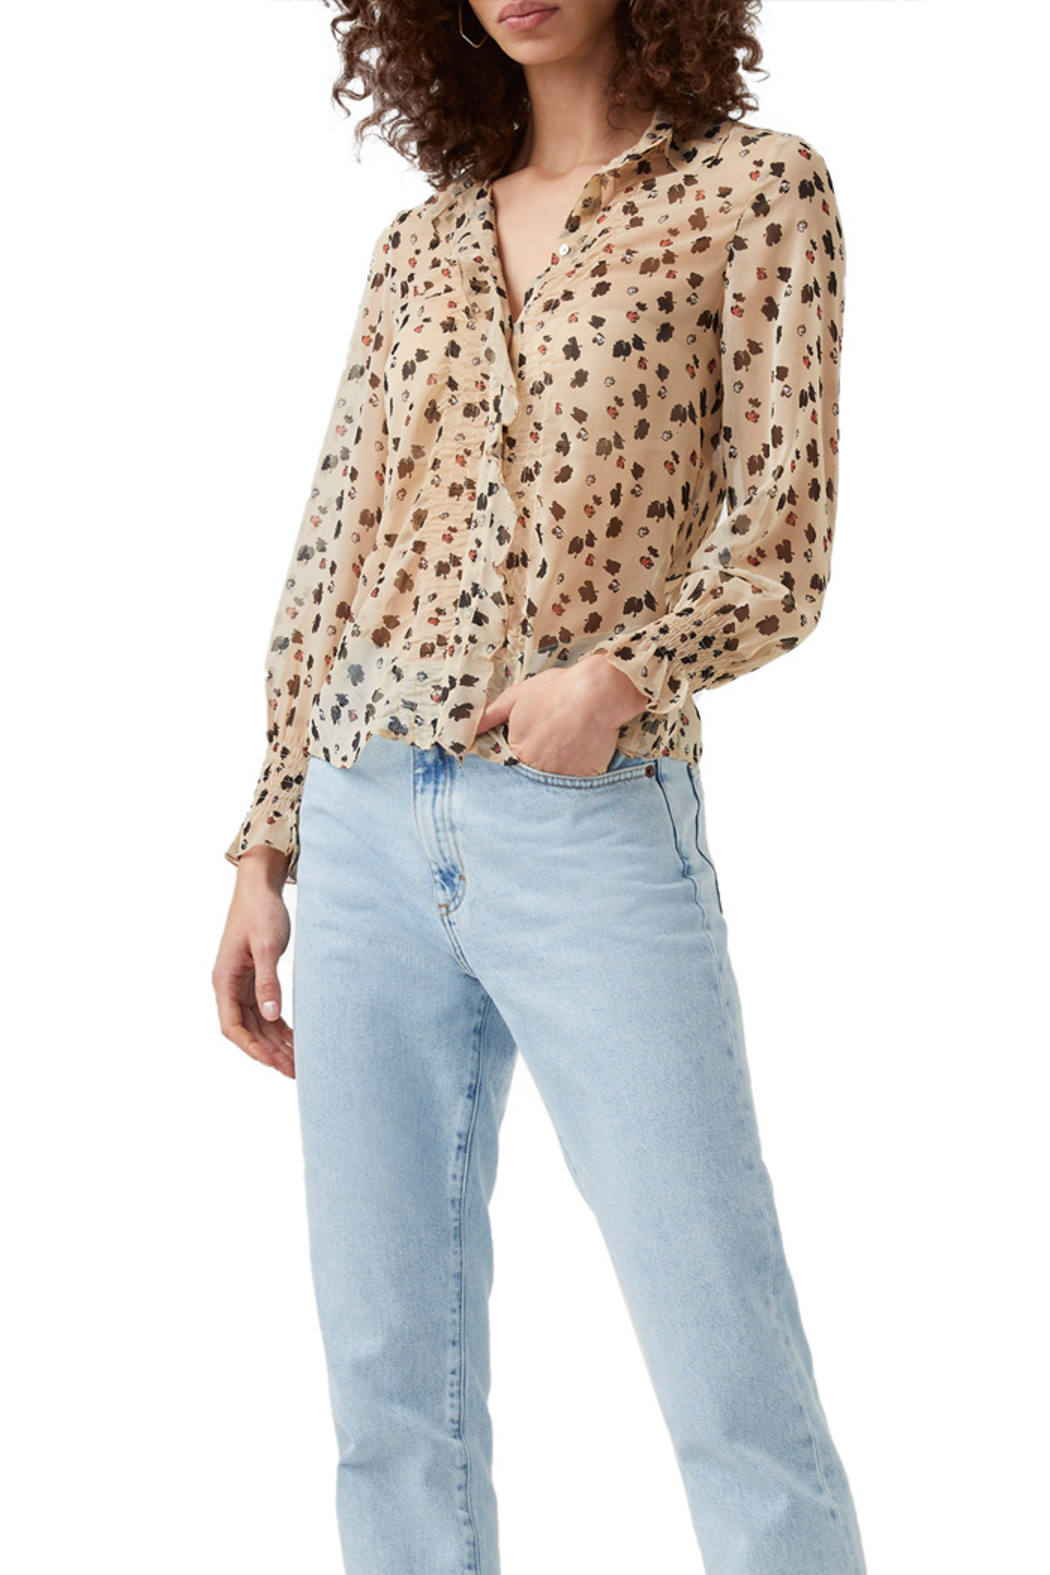 French Connection Dolores Crinkle Sheer Shirt - Front Full Image